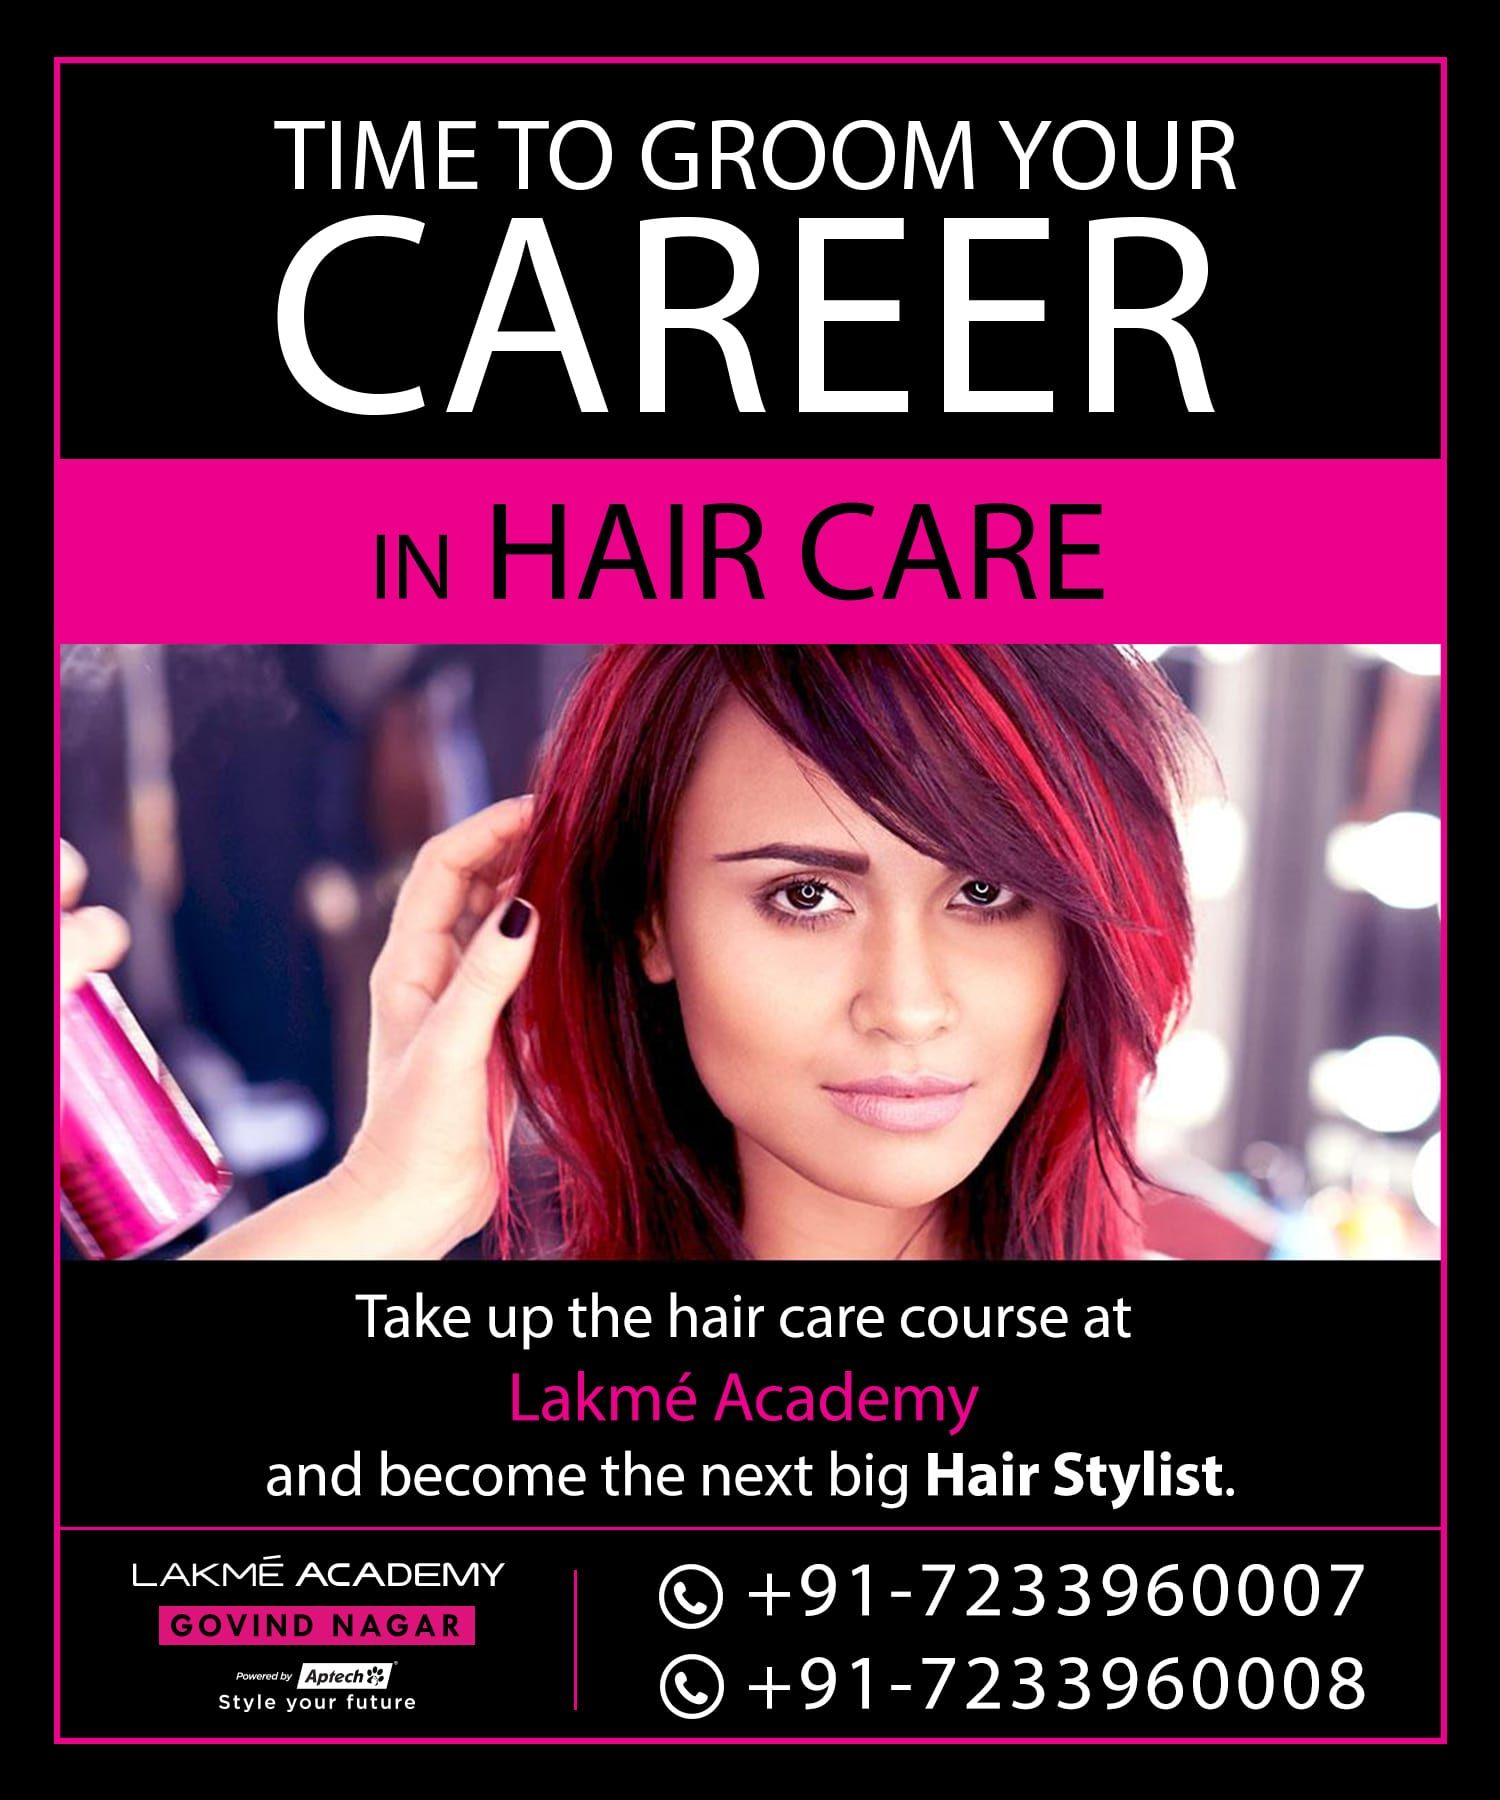 Master the art of hairdressing, hair styling, and hair